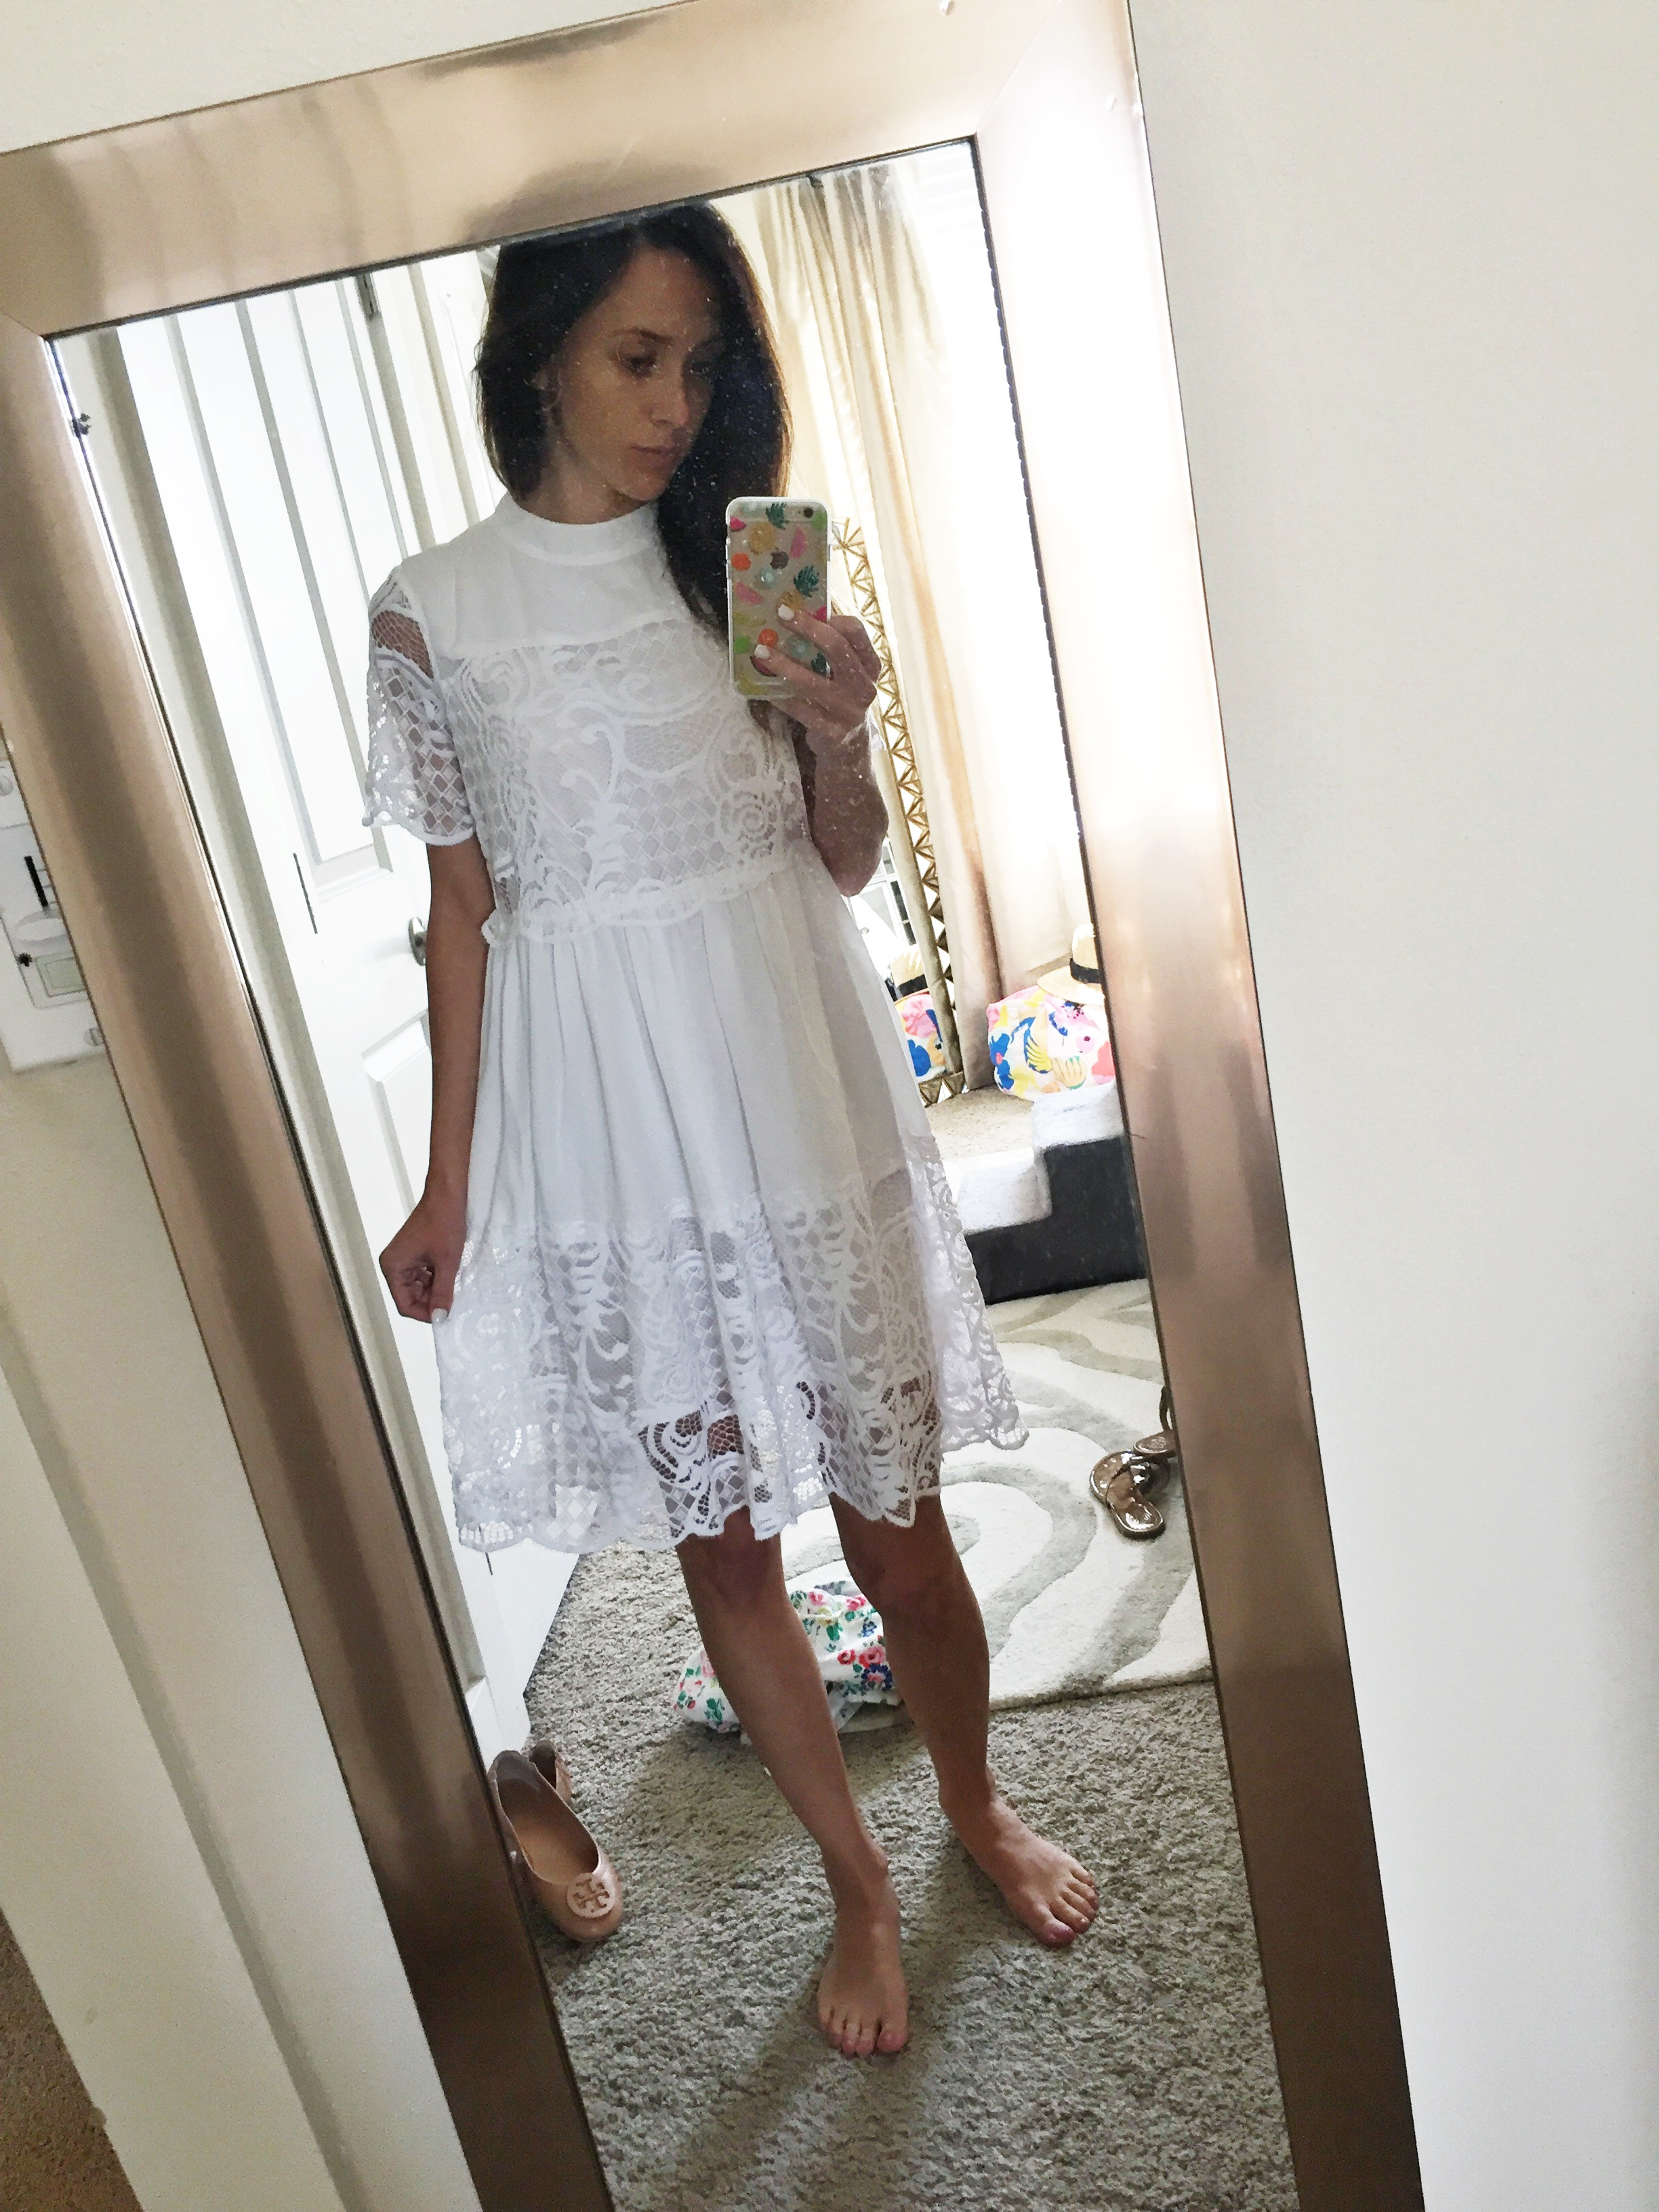 product review, shopping haul, online shopping, white dress,